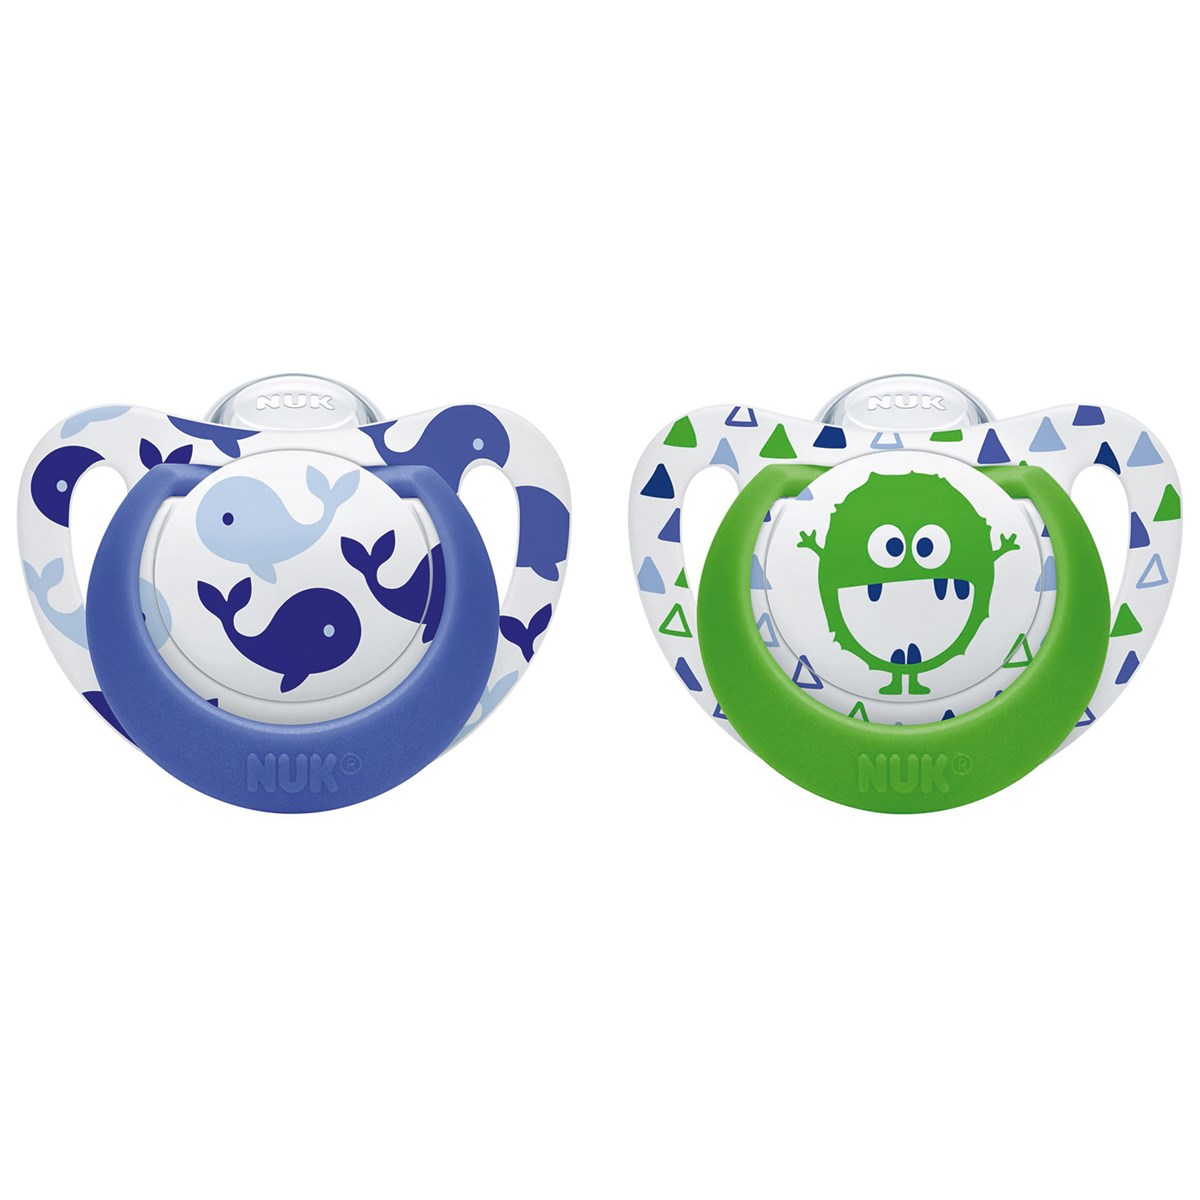 2 Genius Nuk Genius Color Silicone Pacifier 6m Blue Whale Green Monster 2 Pack Babyshop